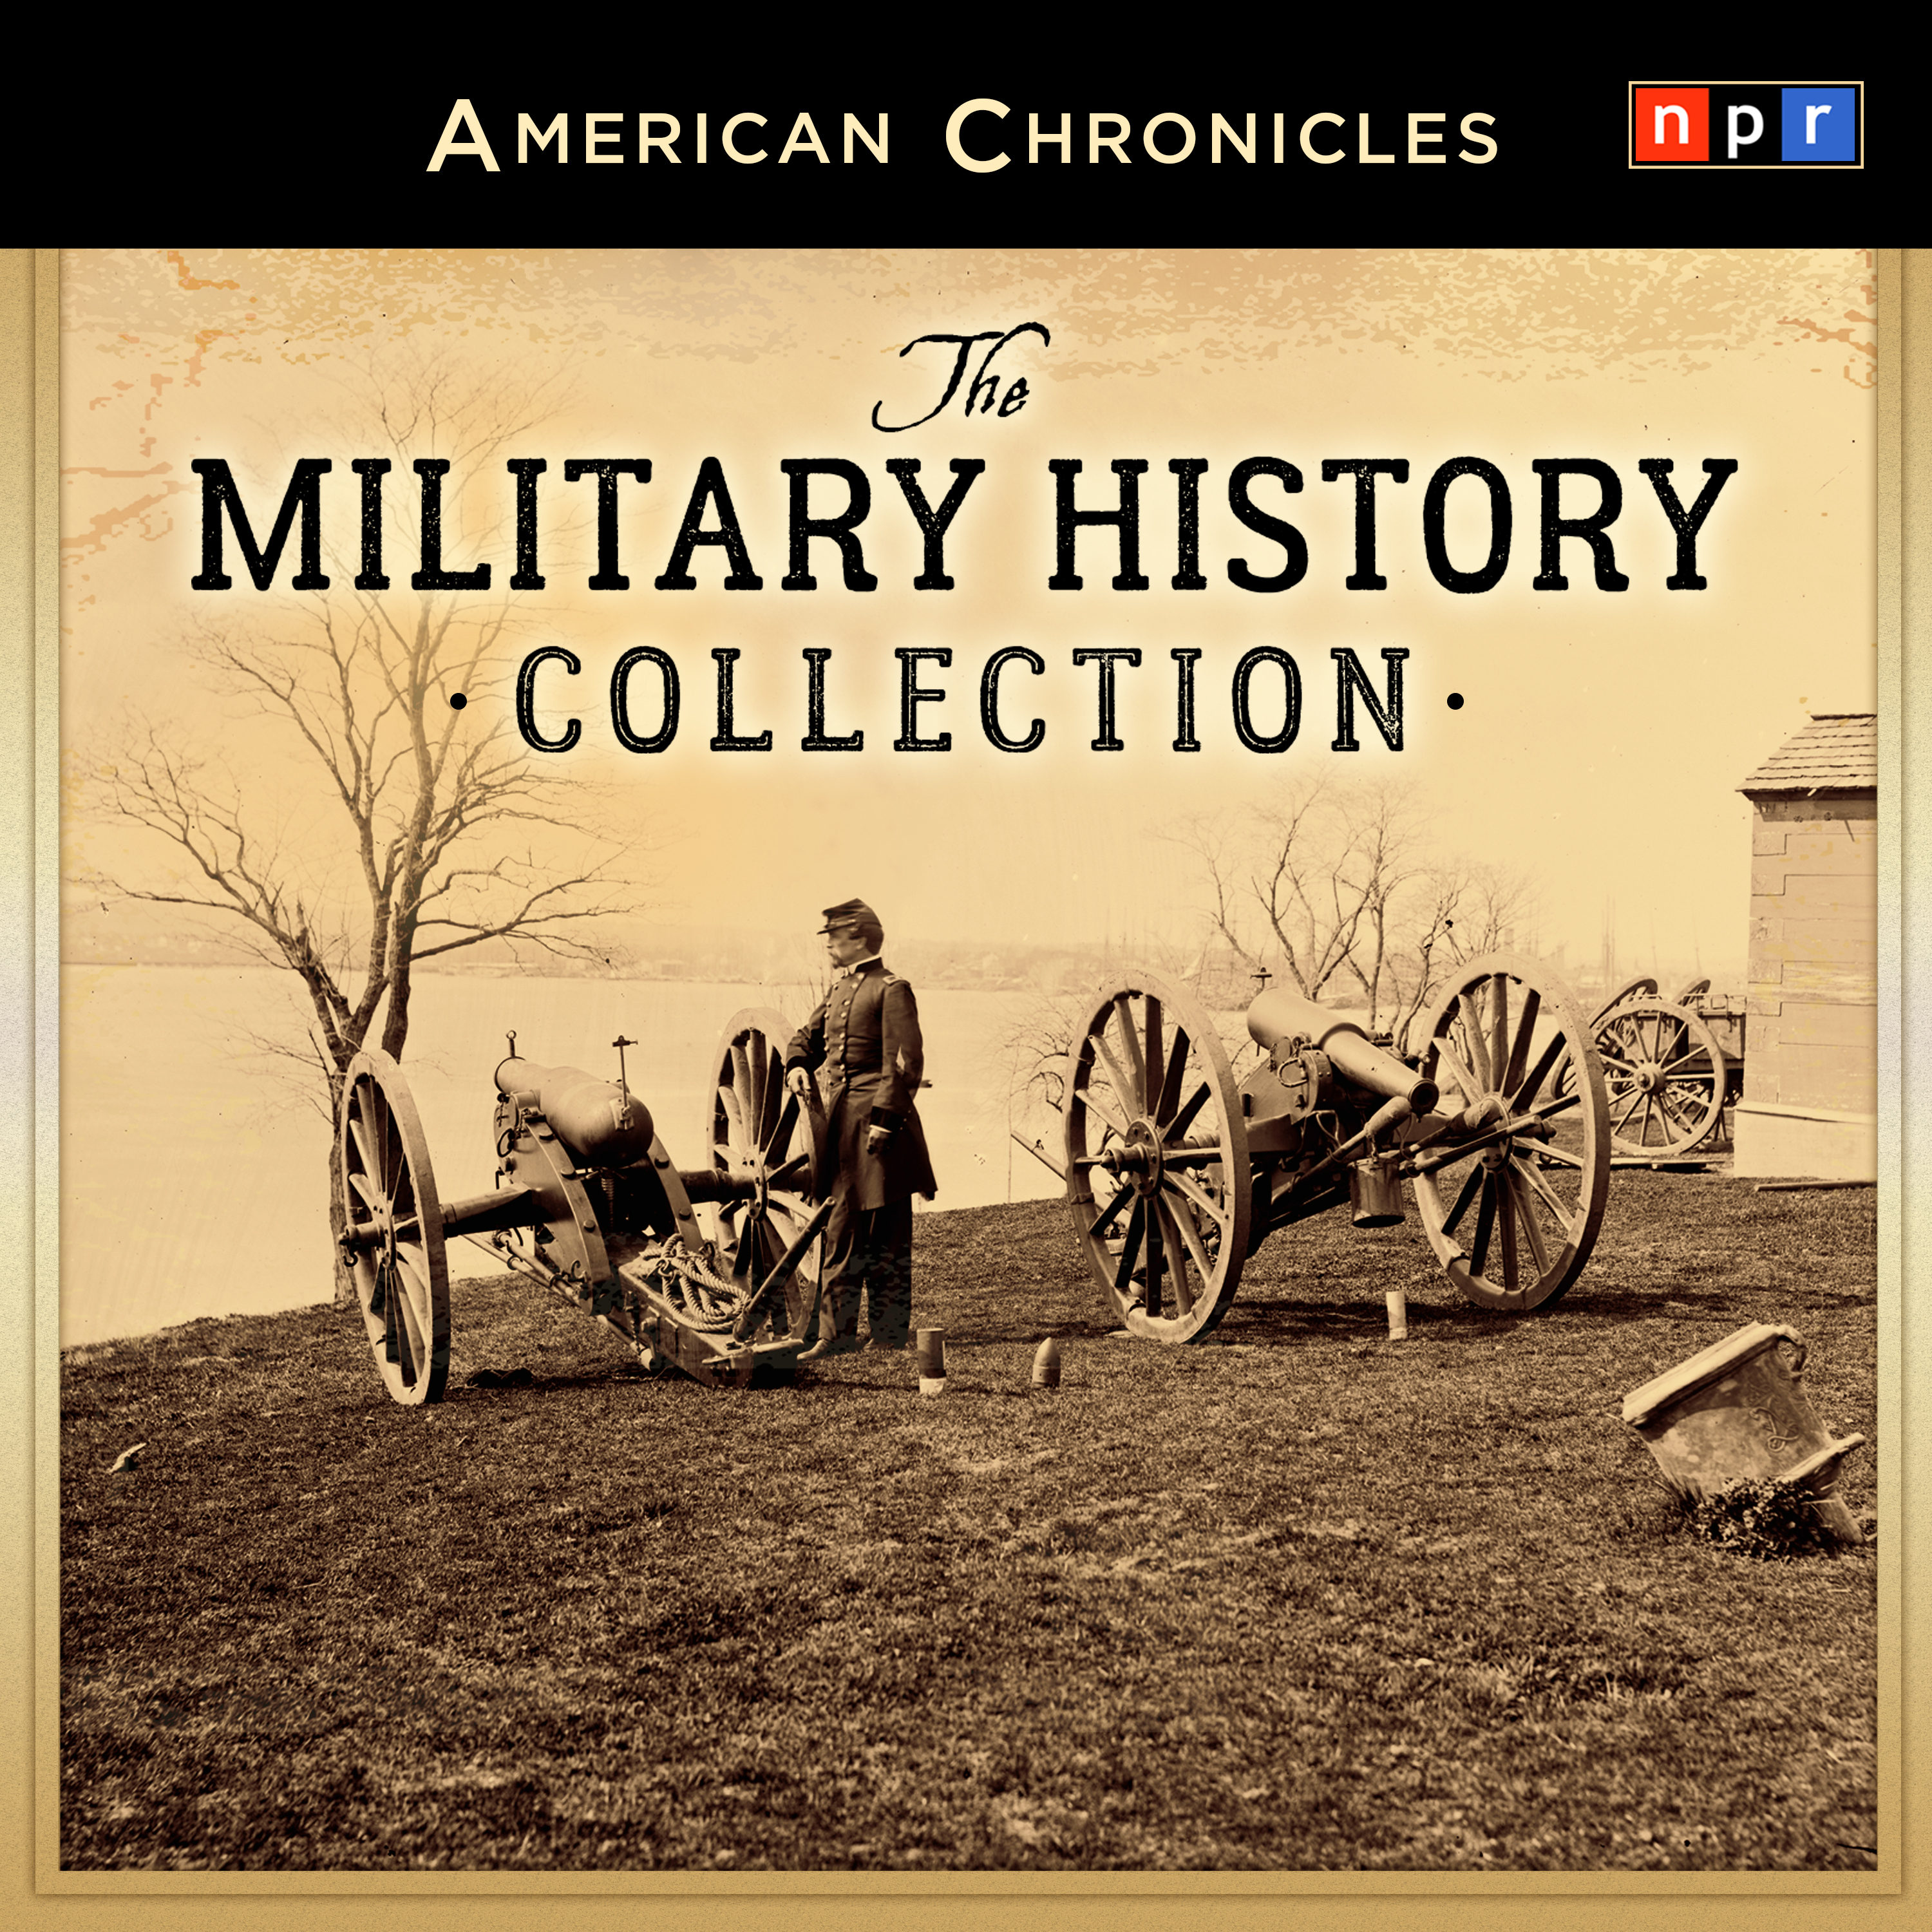 Printable NPR American Chronicles: The Military History Collection Audiobook Cover Art